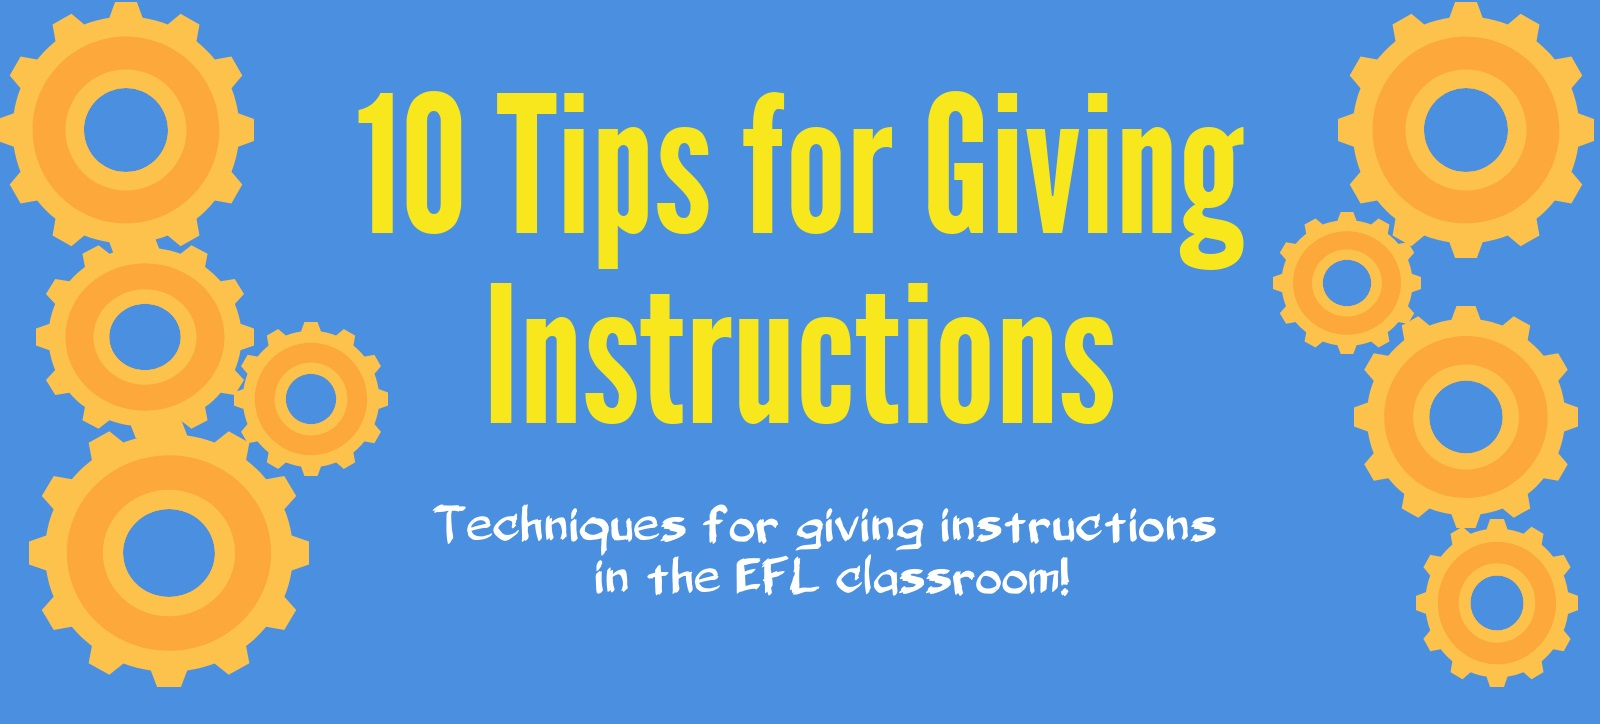 10 Tips for Giving Instructions - ELT Connect